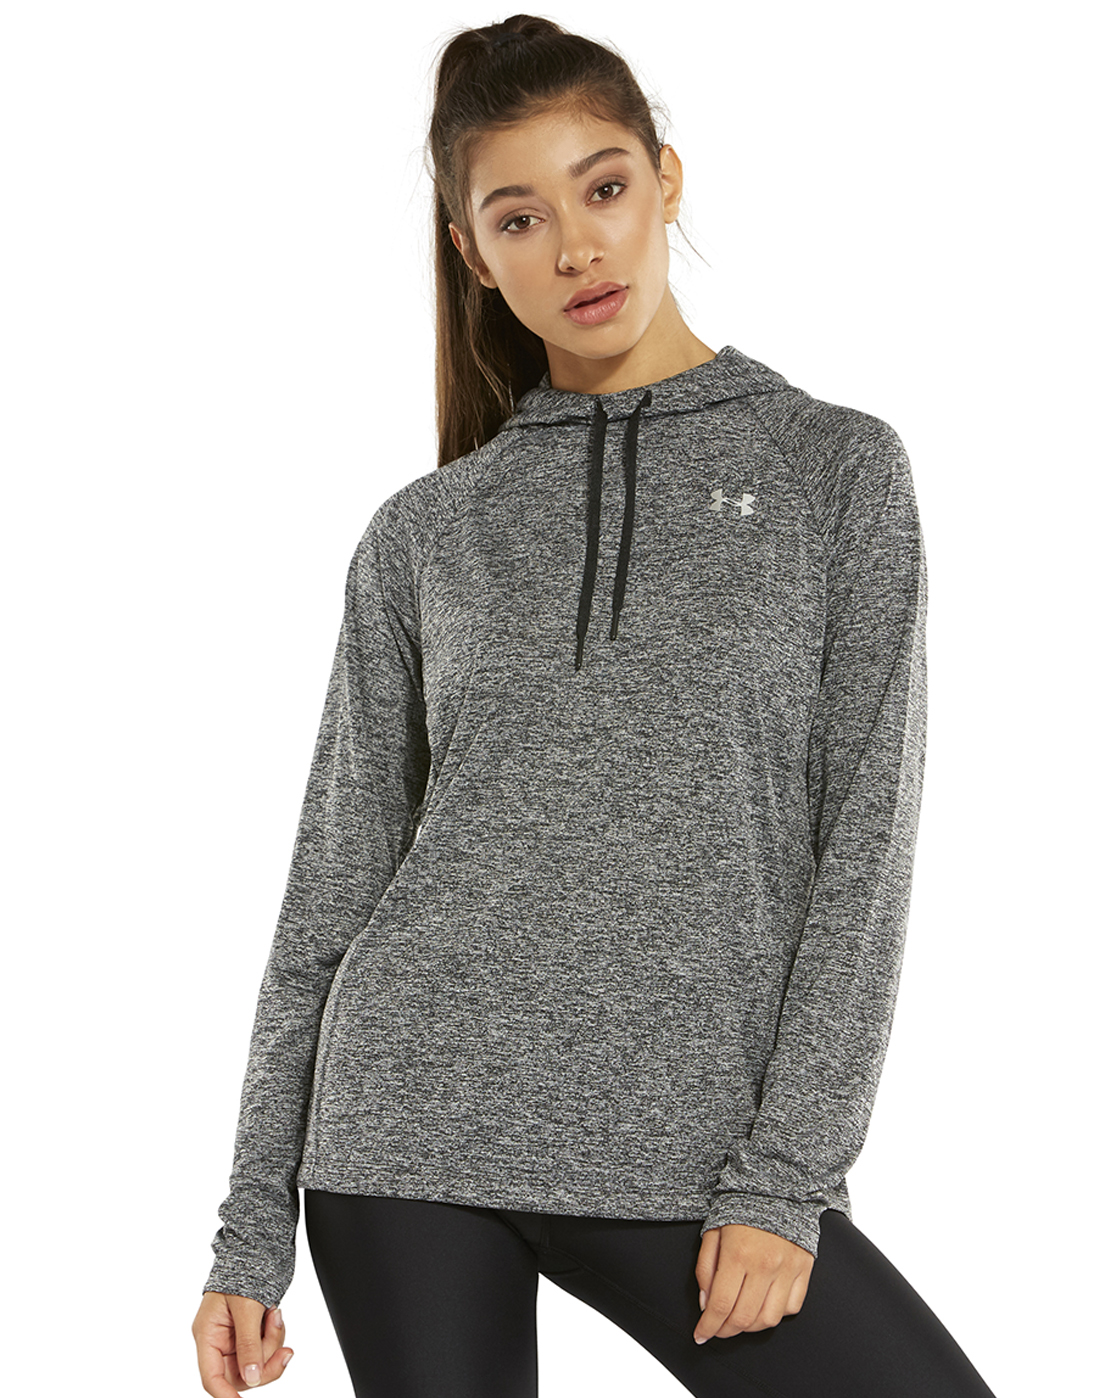 8d8abe2ea Women's Black Under Armour Gym Hoodie | Life Style Sports